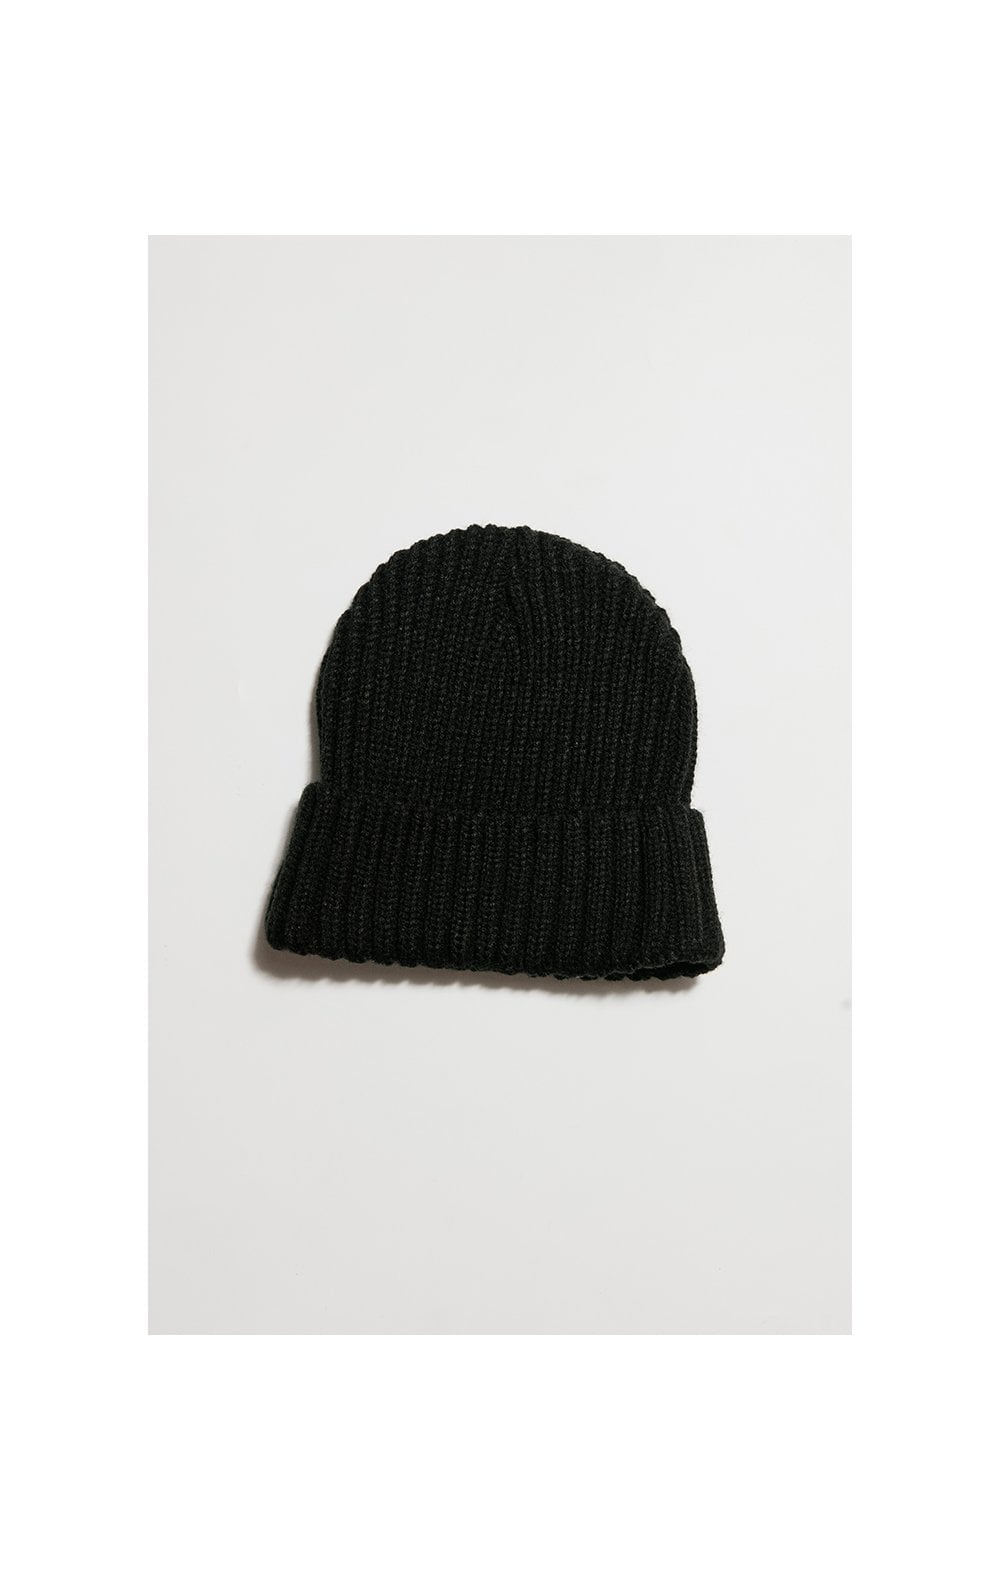 SikSilk Rib Cuff Beanie - Black & Gold (1)